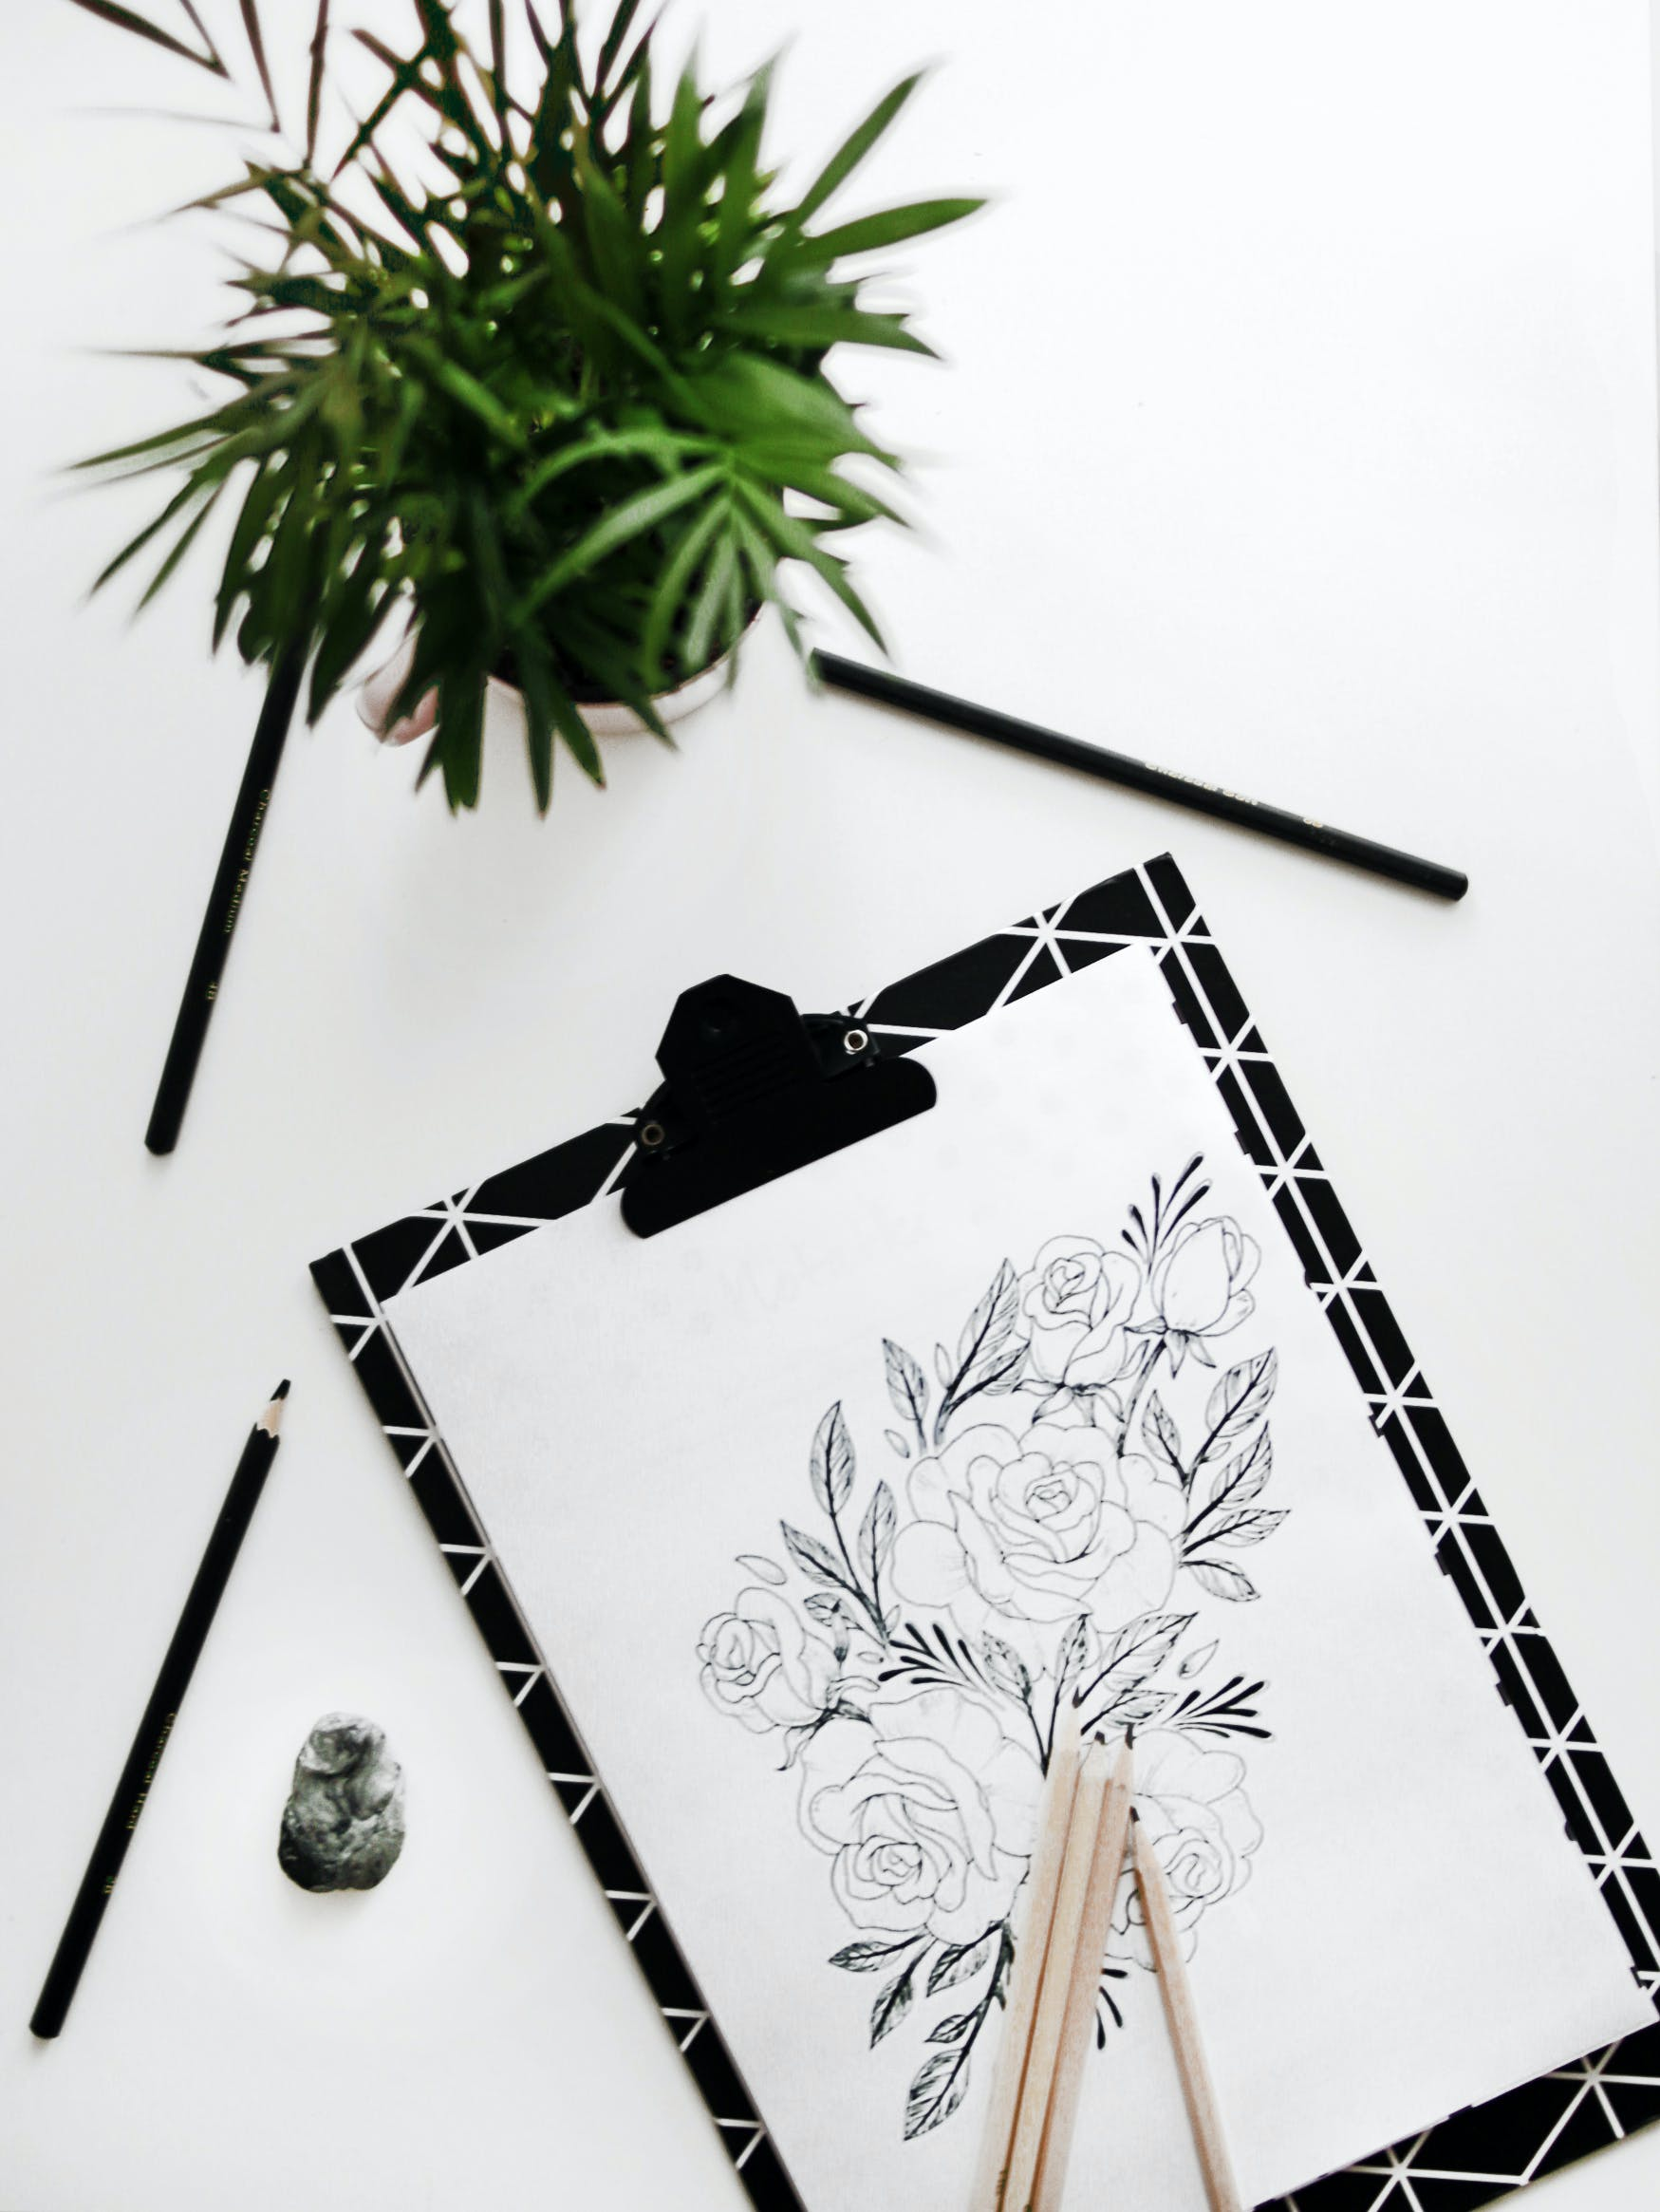 Black and White Clipboard With Floral Sketch on Table Near Green-leafed Plant in Pot